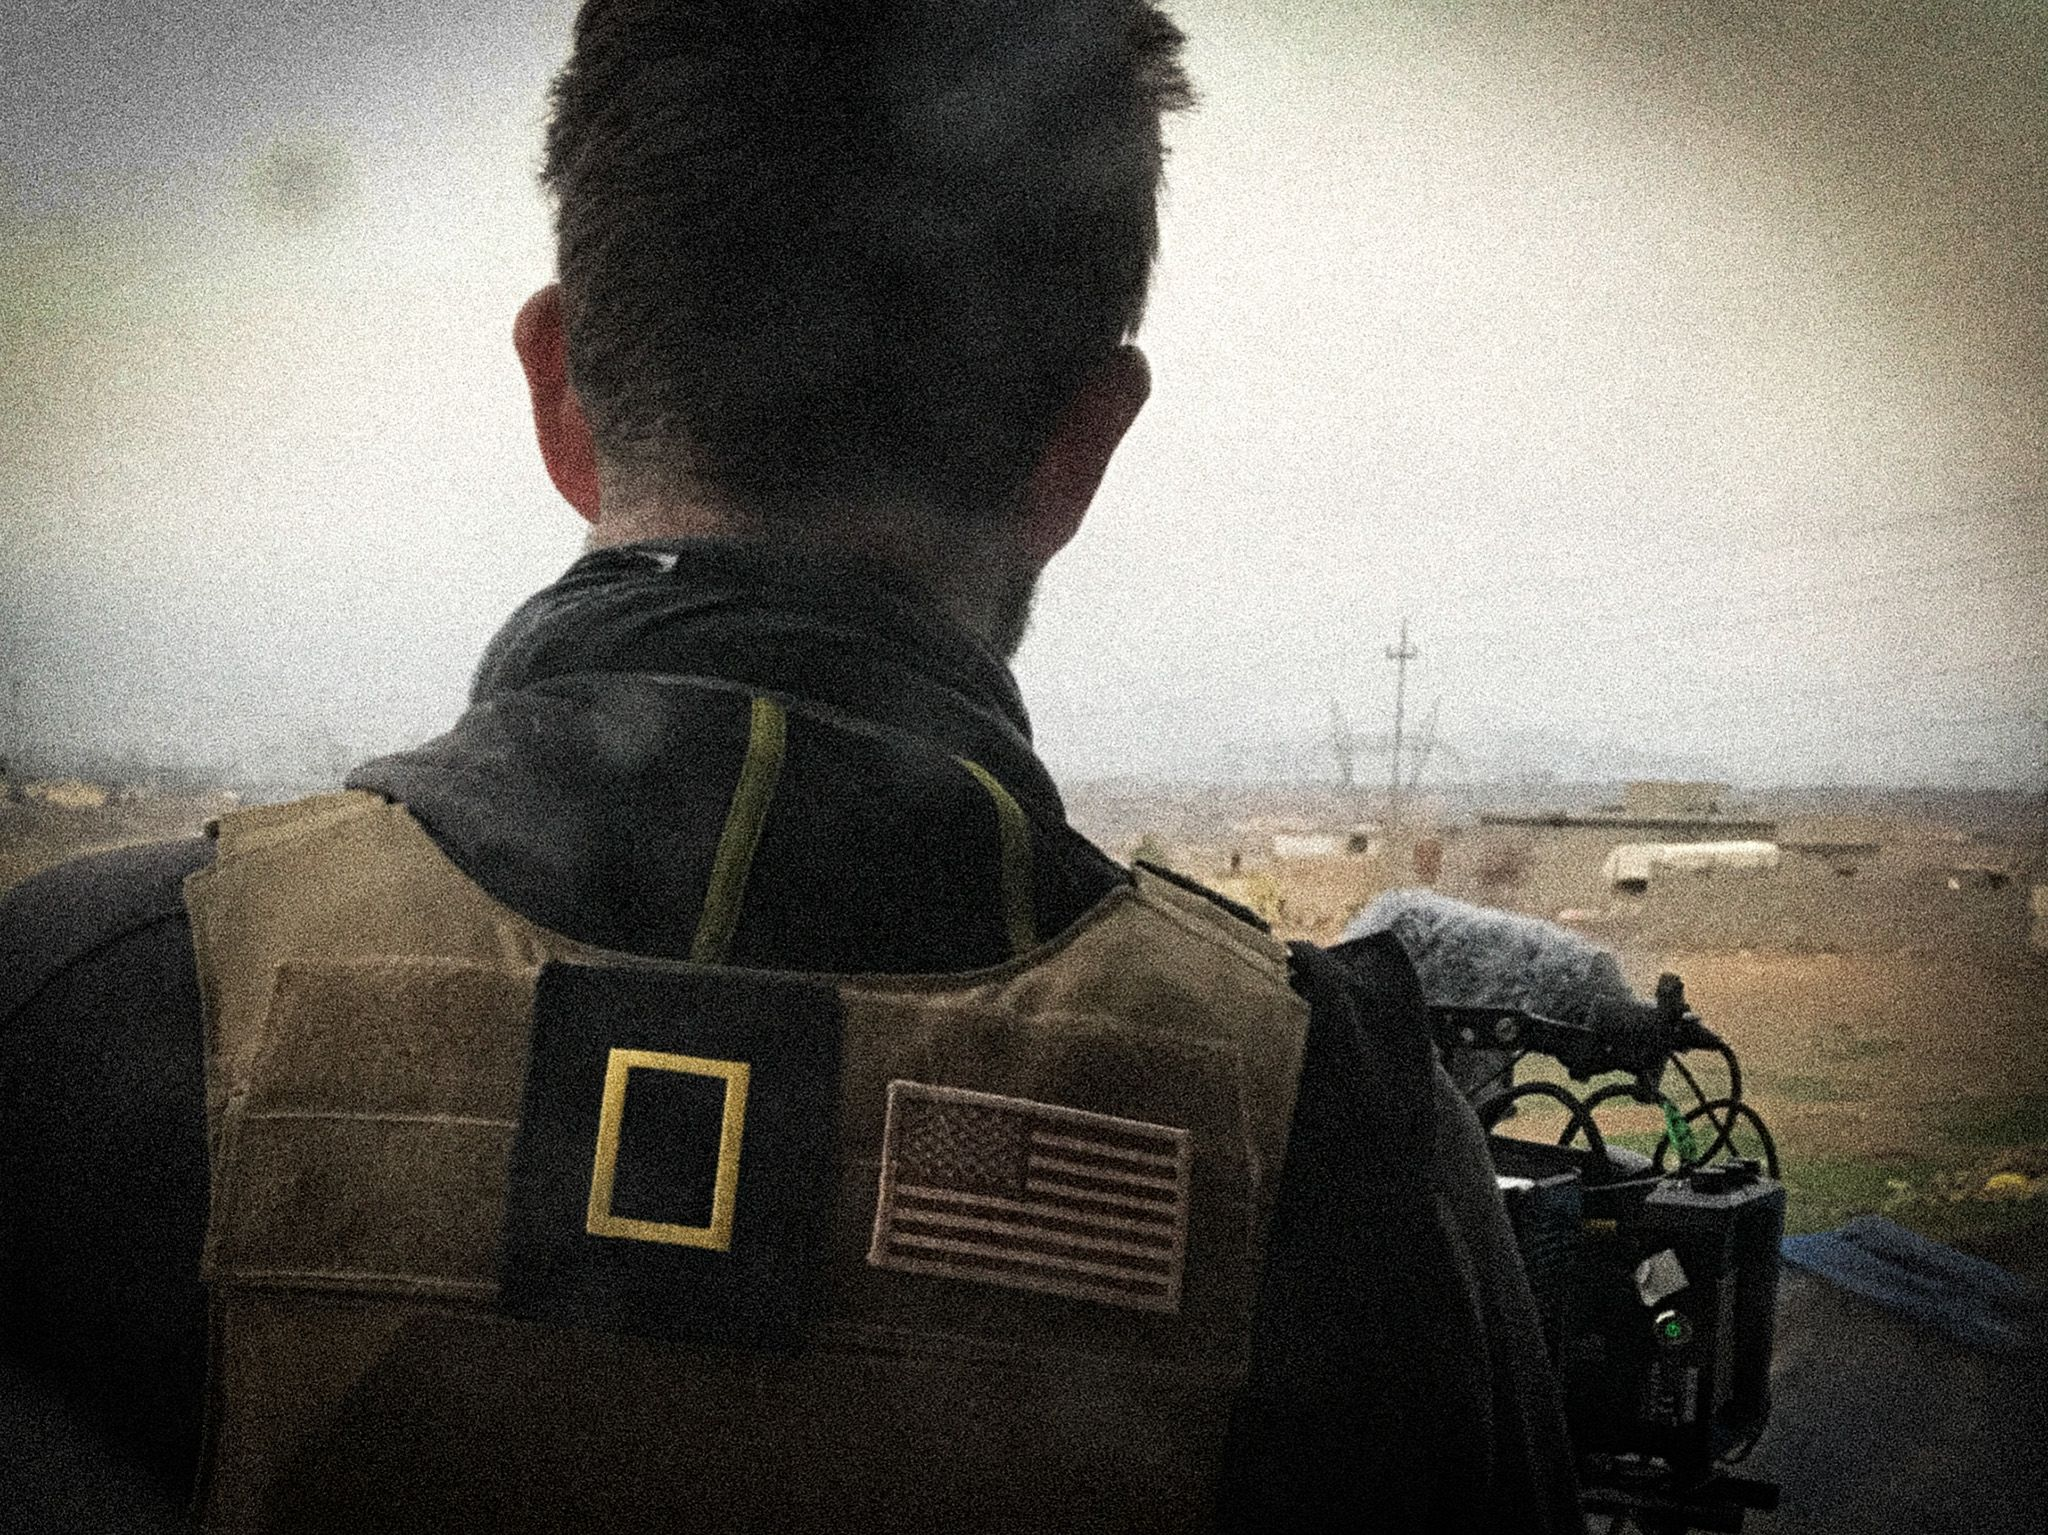 Mosul, Iraq:  Over the shoulder of a cameraman.  This image is from Chain of Command. [Photo of the day - February 2018]